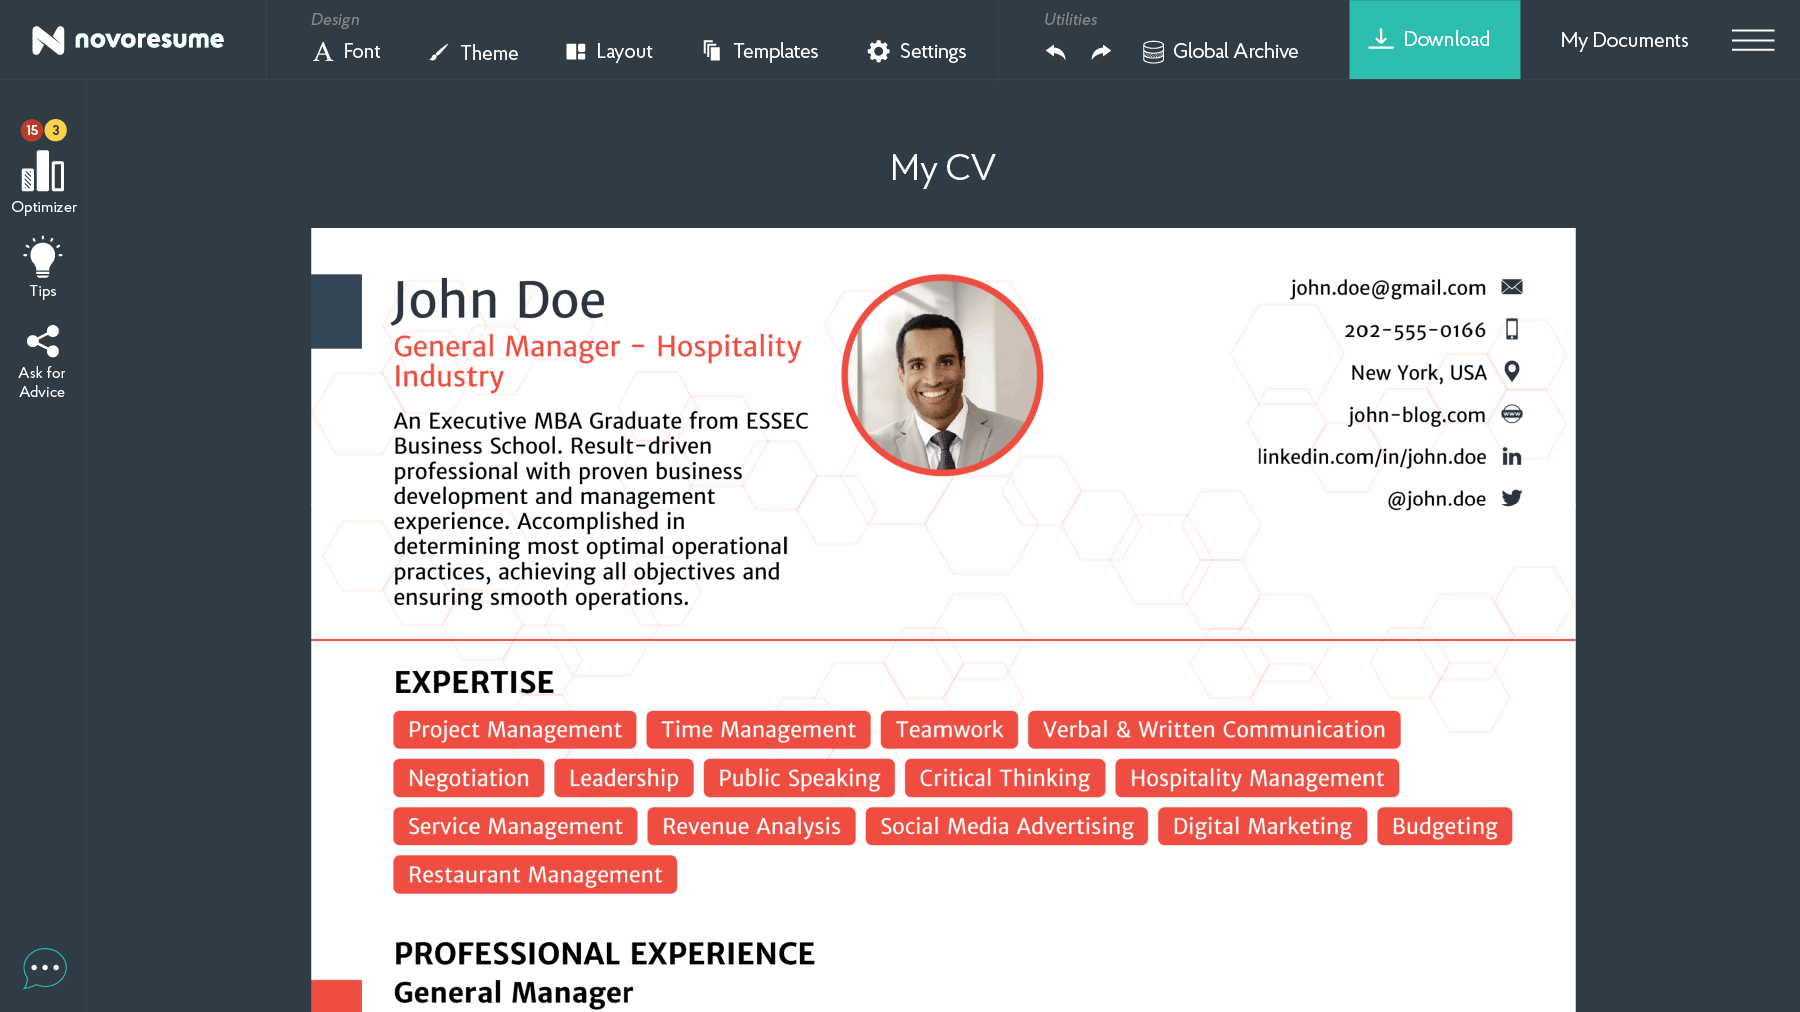 a modern cv maker where a cv for a general manager is being shown